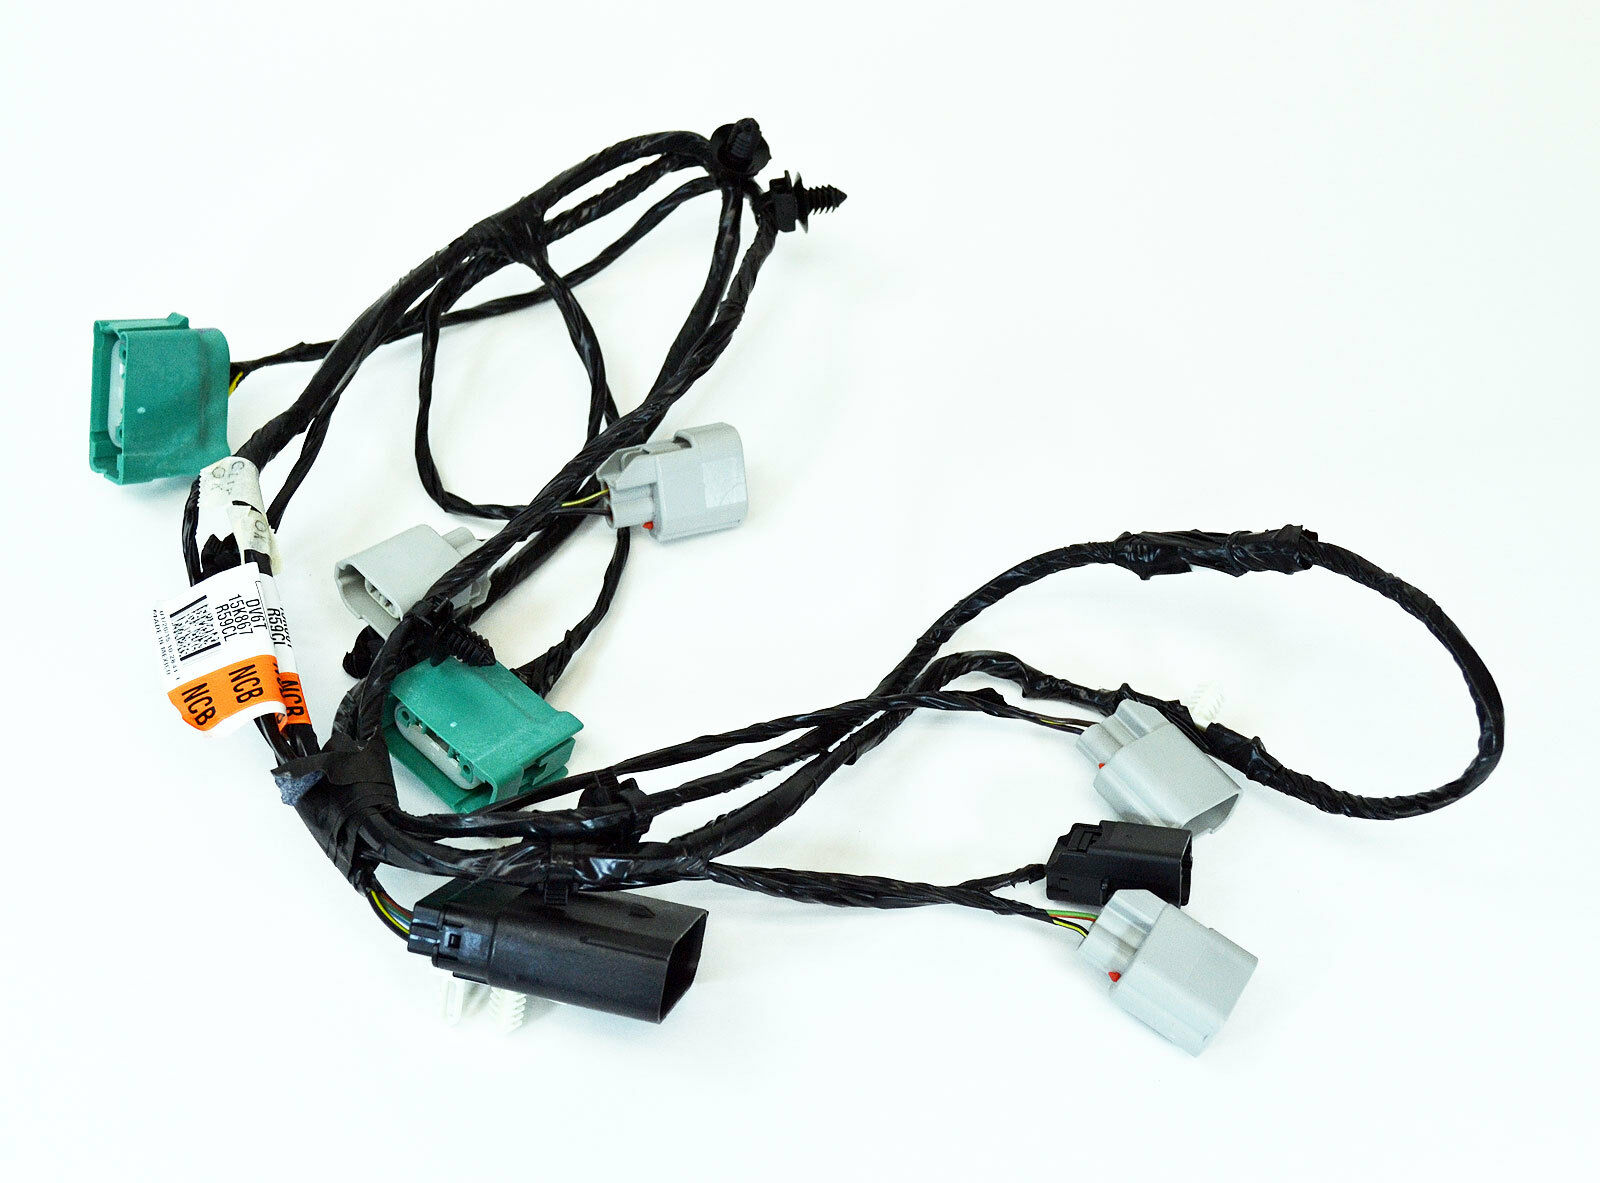 s l1600 ford oem headlight wiring harness dv6z15k867c image 31 ebay oem 2010 sentra headlight wiring harness plug at soozxer.org